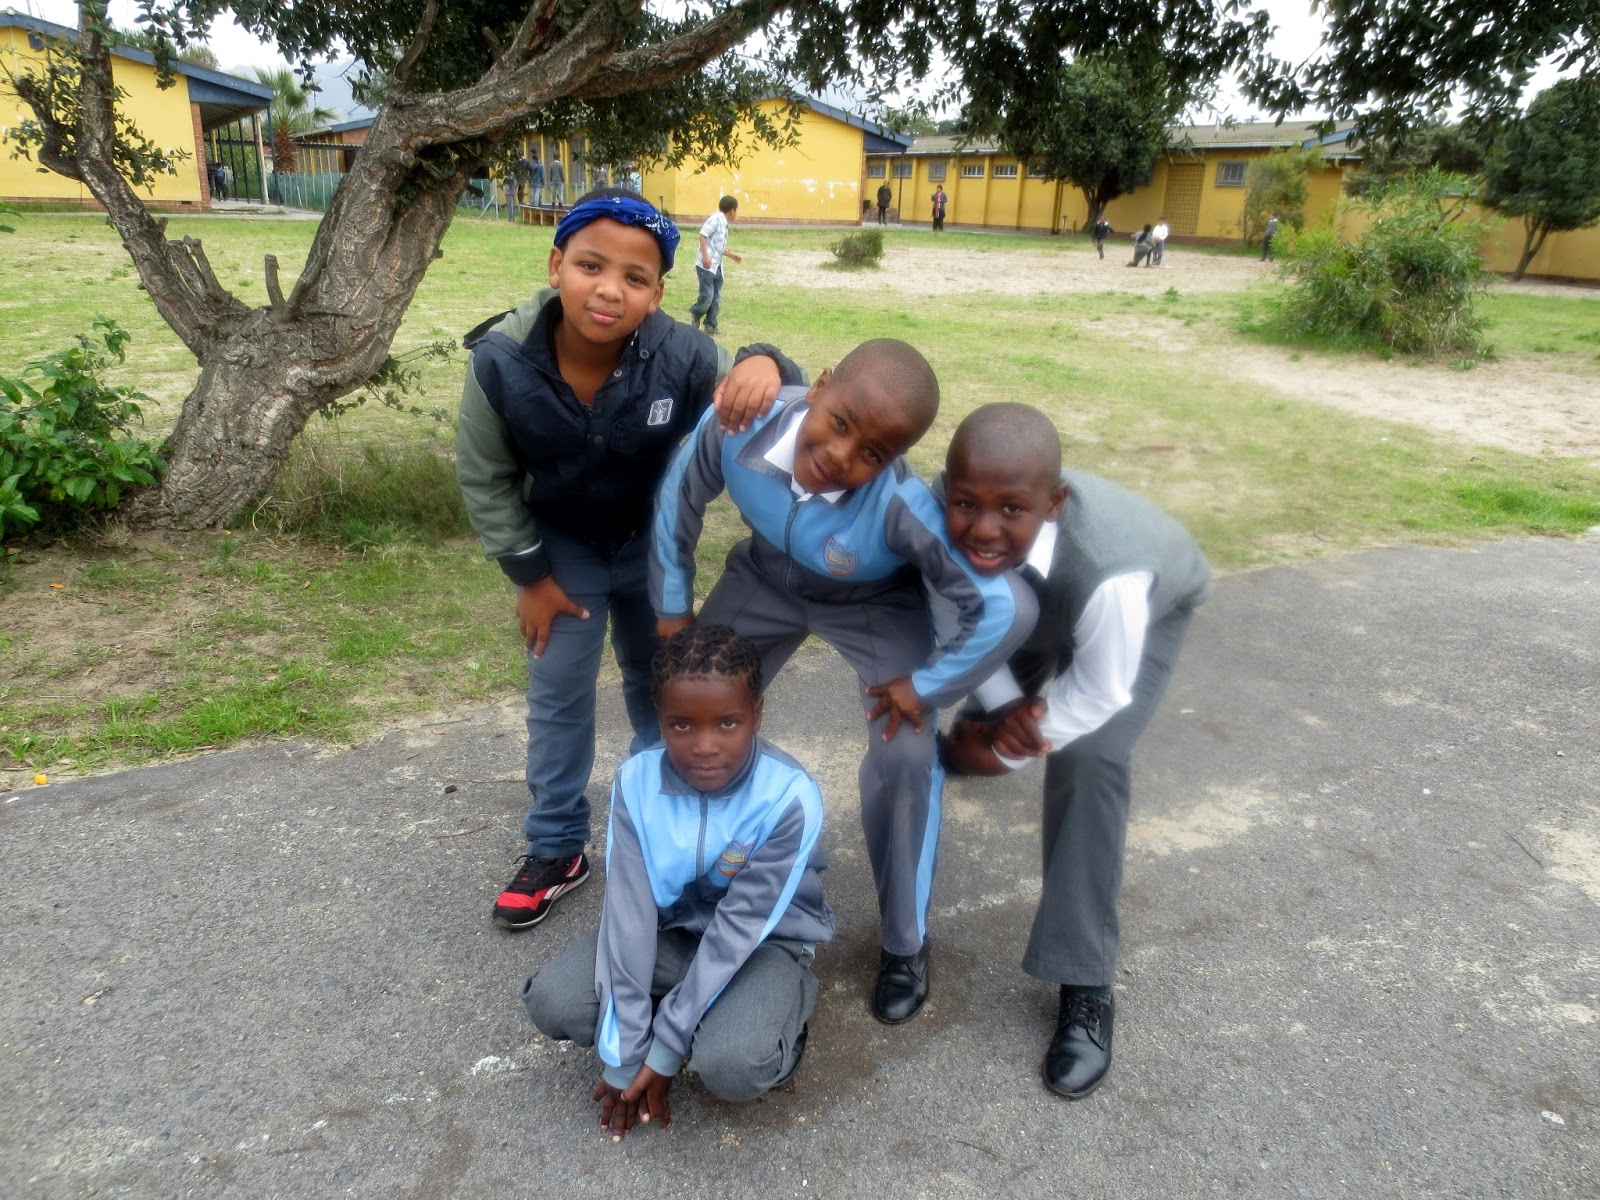 Private Primary Schools In Athlone Cape Town